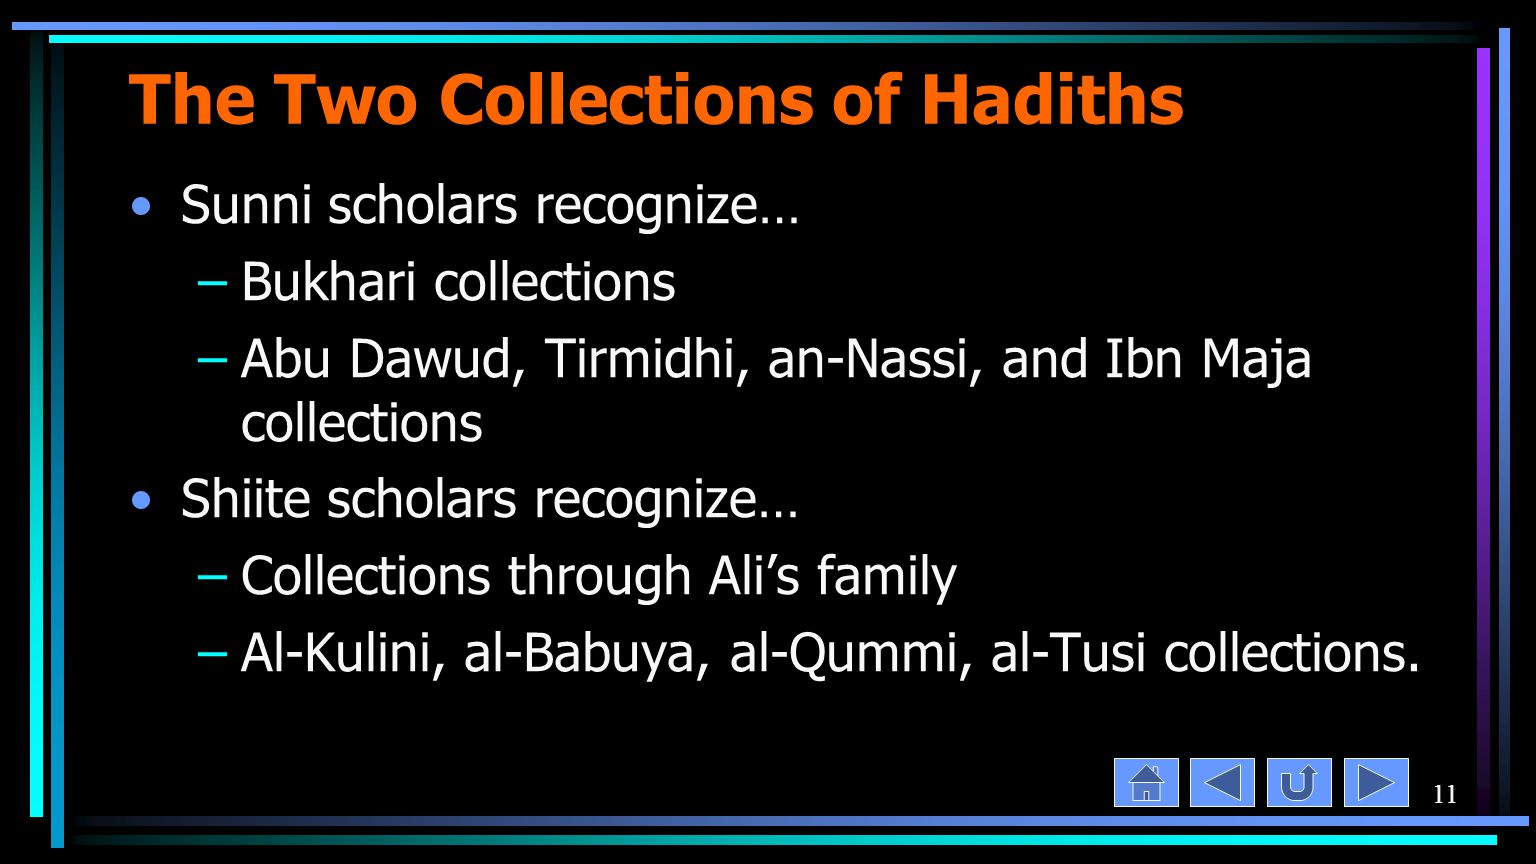 11 The Two Collections of Hadiths Sunni scholars recognize… –Bukhari collections –Abu Dawud, Tirmidhi, an-Nassi, and Ibn Maja collections Shiite scholars recognize… –Collections through Ali's family –Al-Kulini, al-Babuya, al-Qummi, al-Tusi collections.